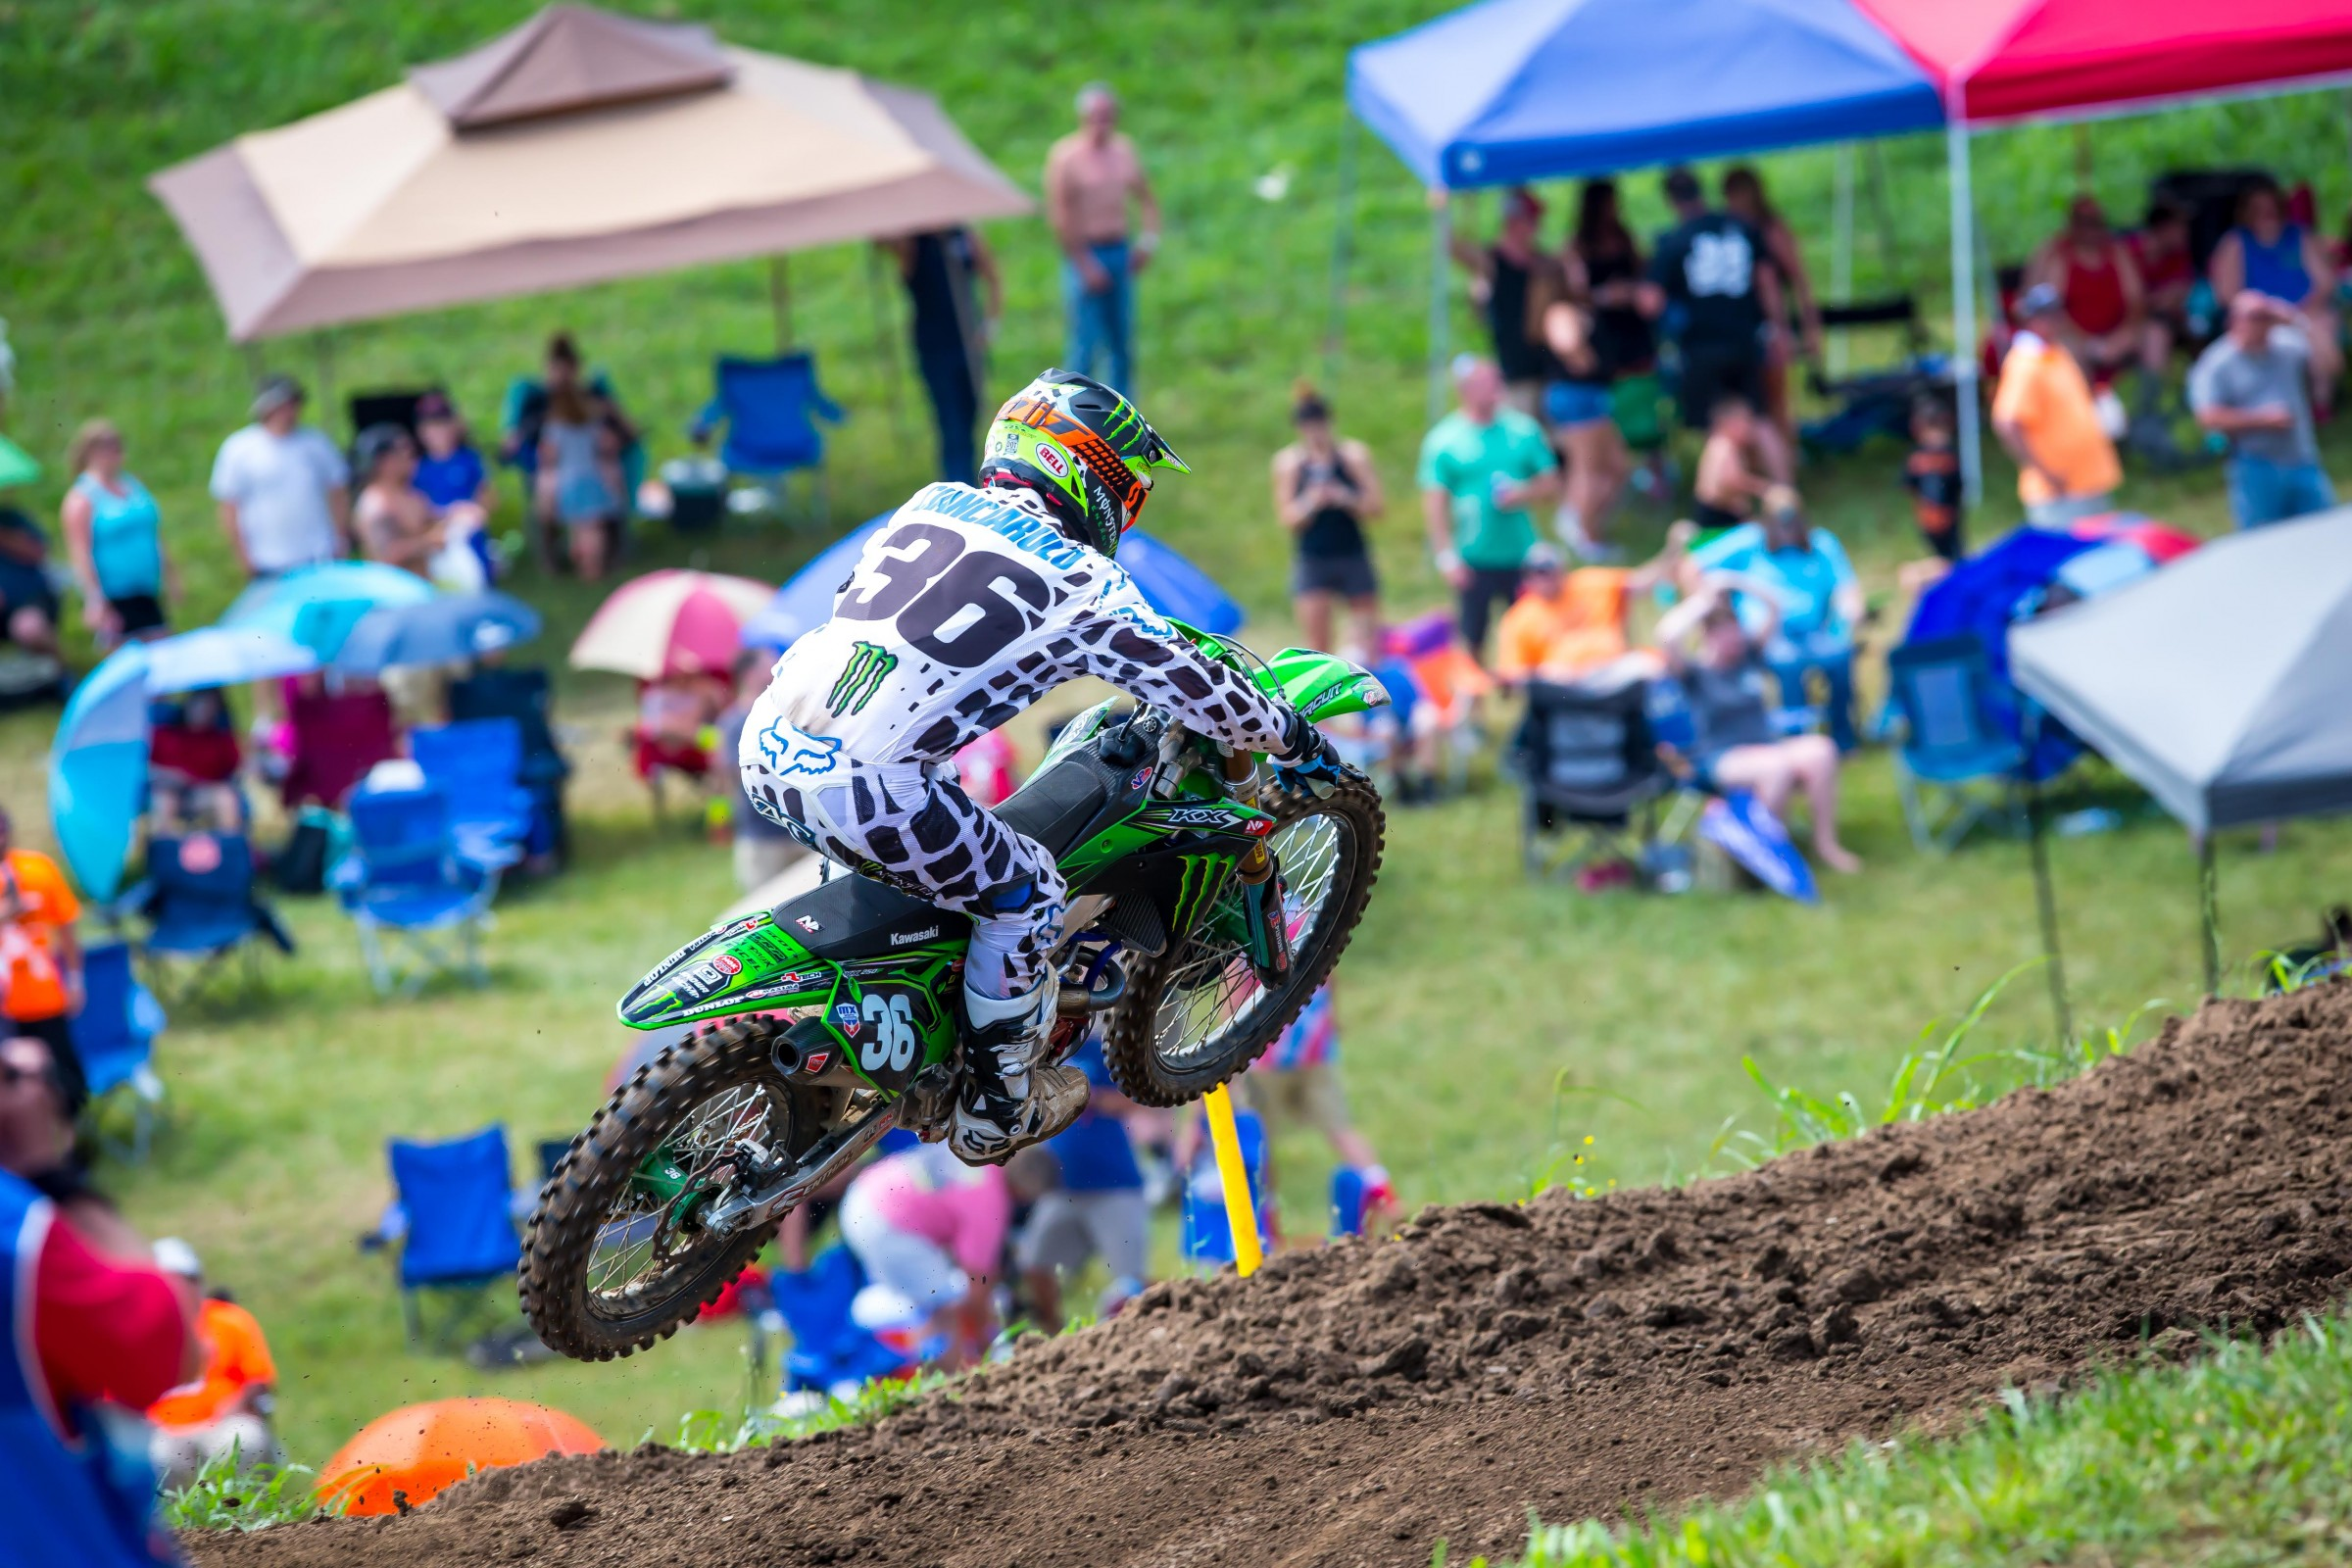 AC had his best moto finish since the opening moto at Hangtown on Saturday.